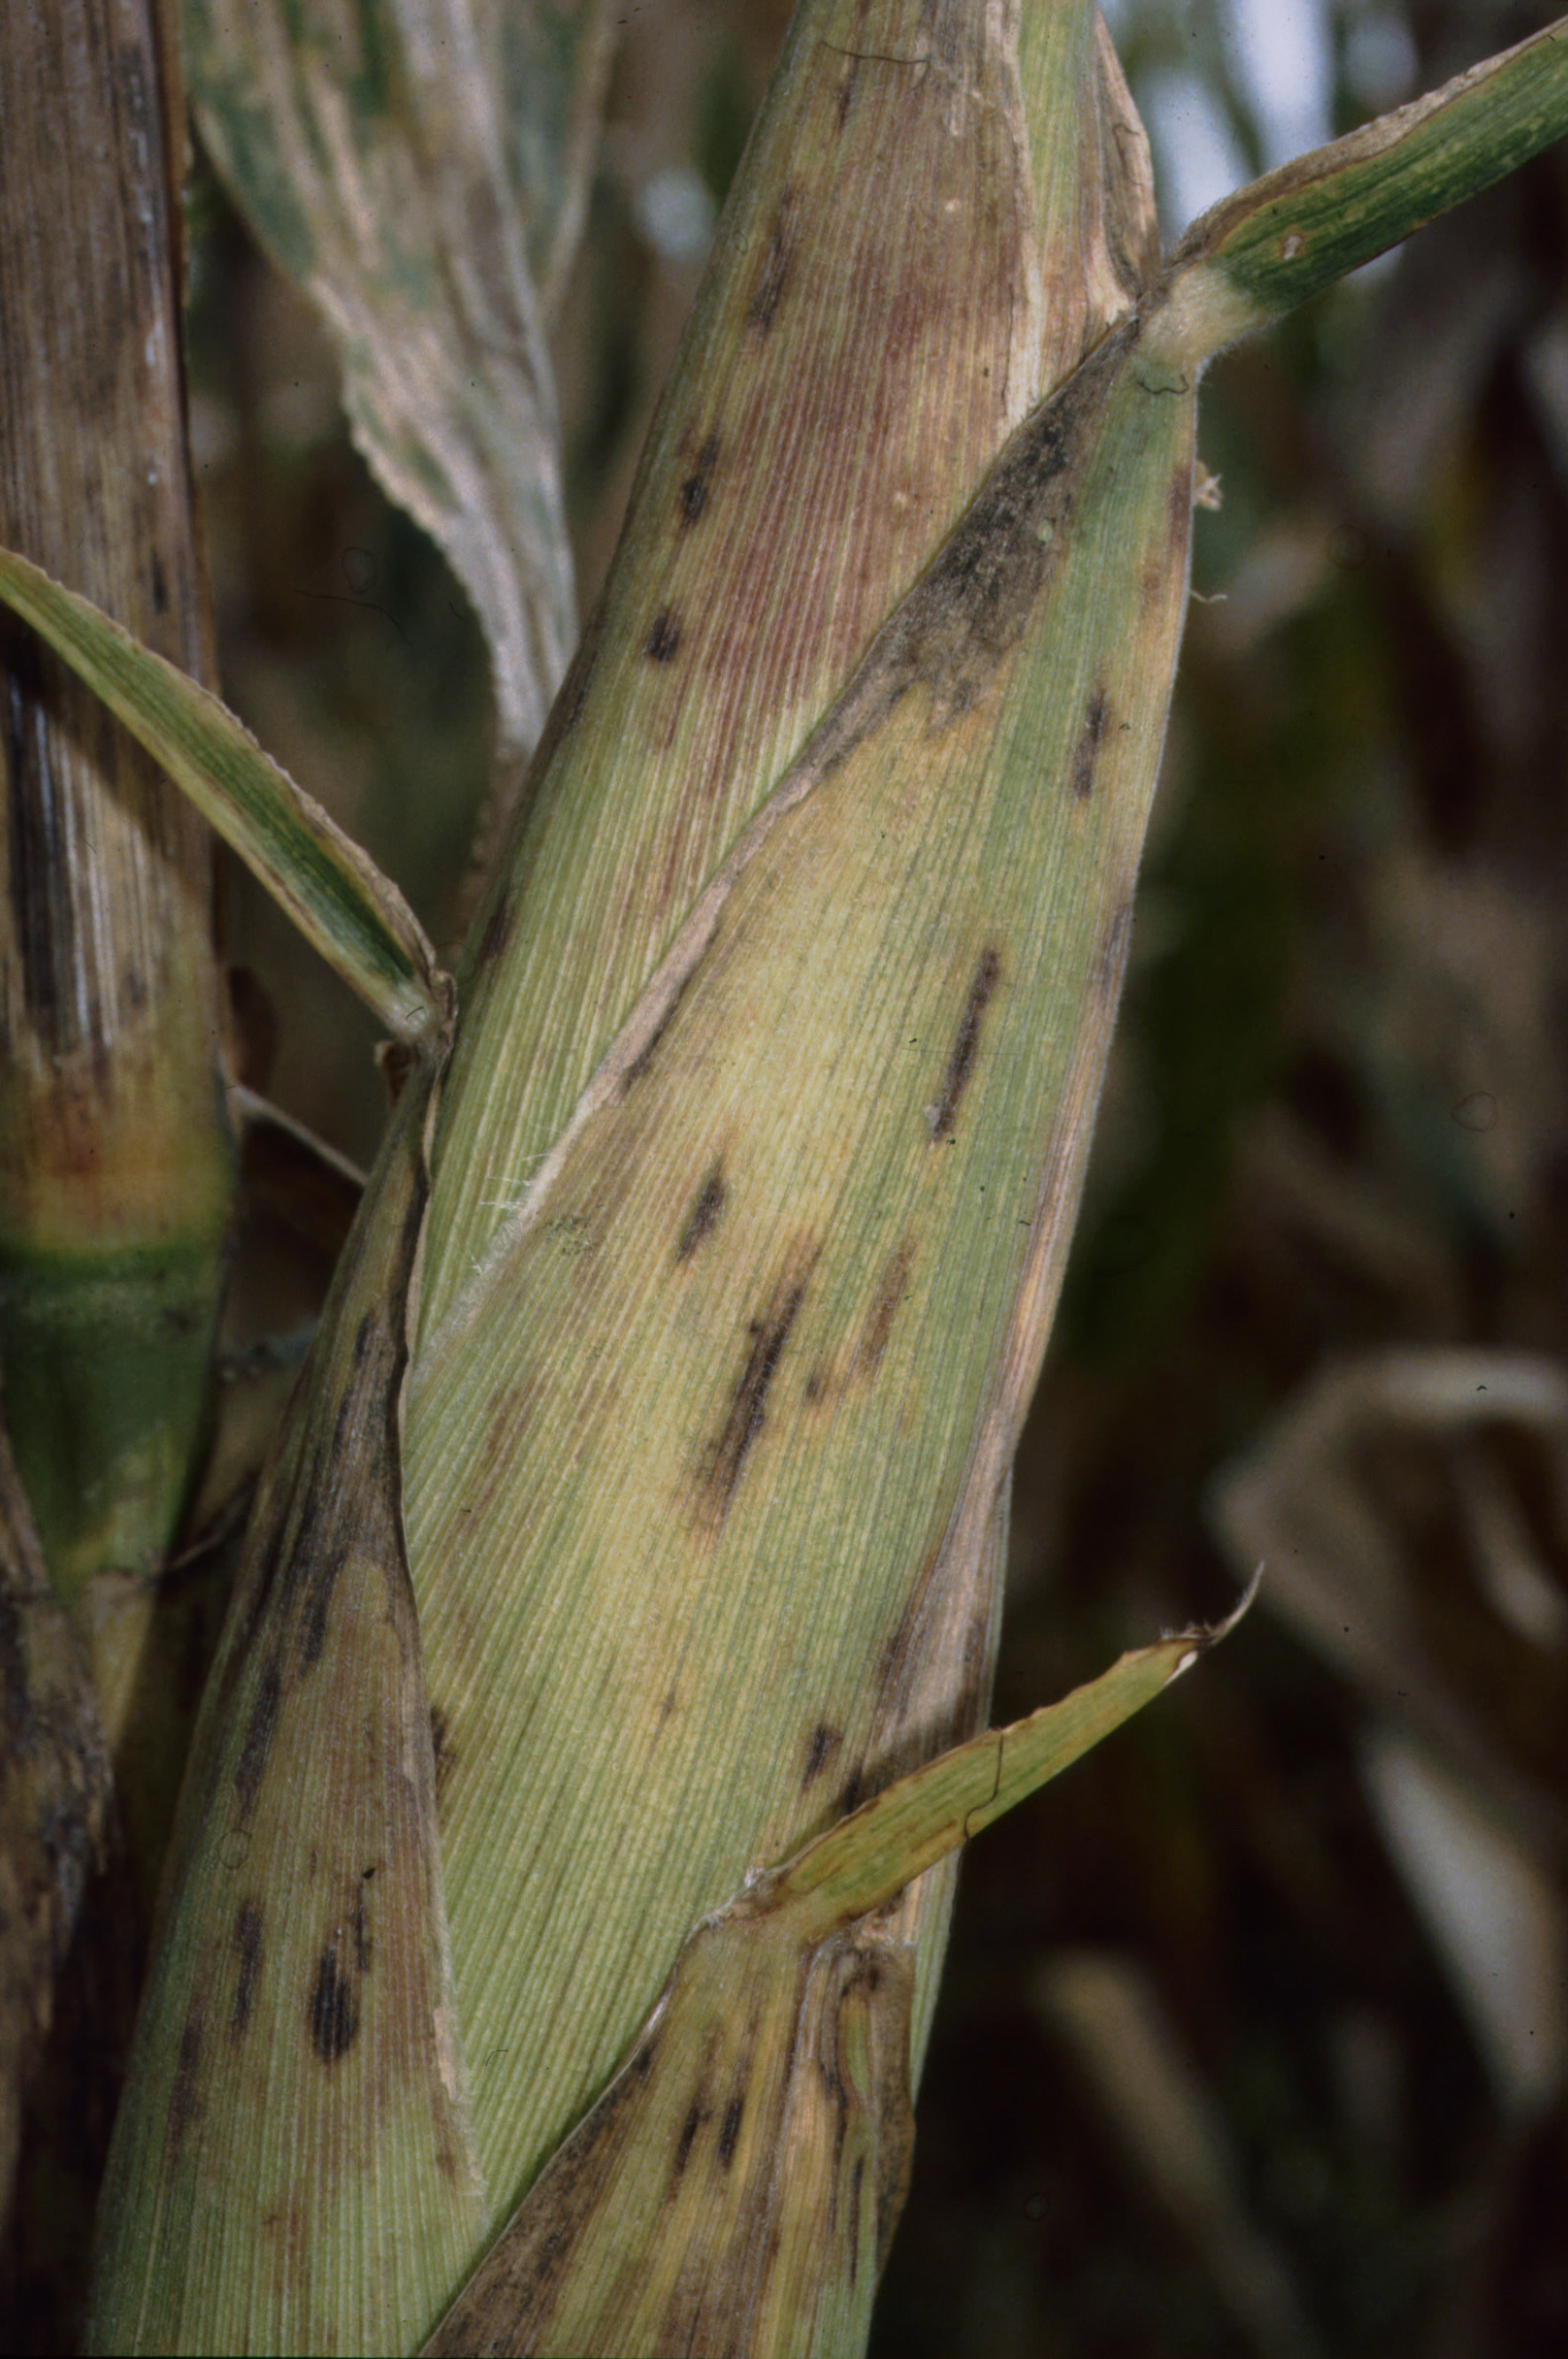 Gray leaf spot lesions on corn husk.